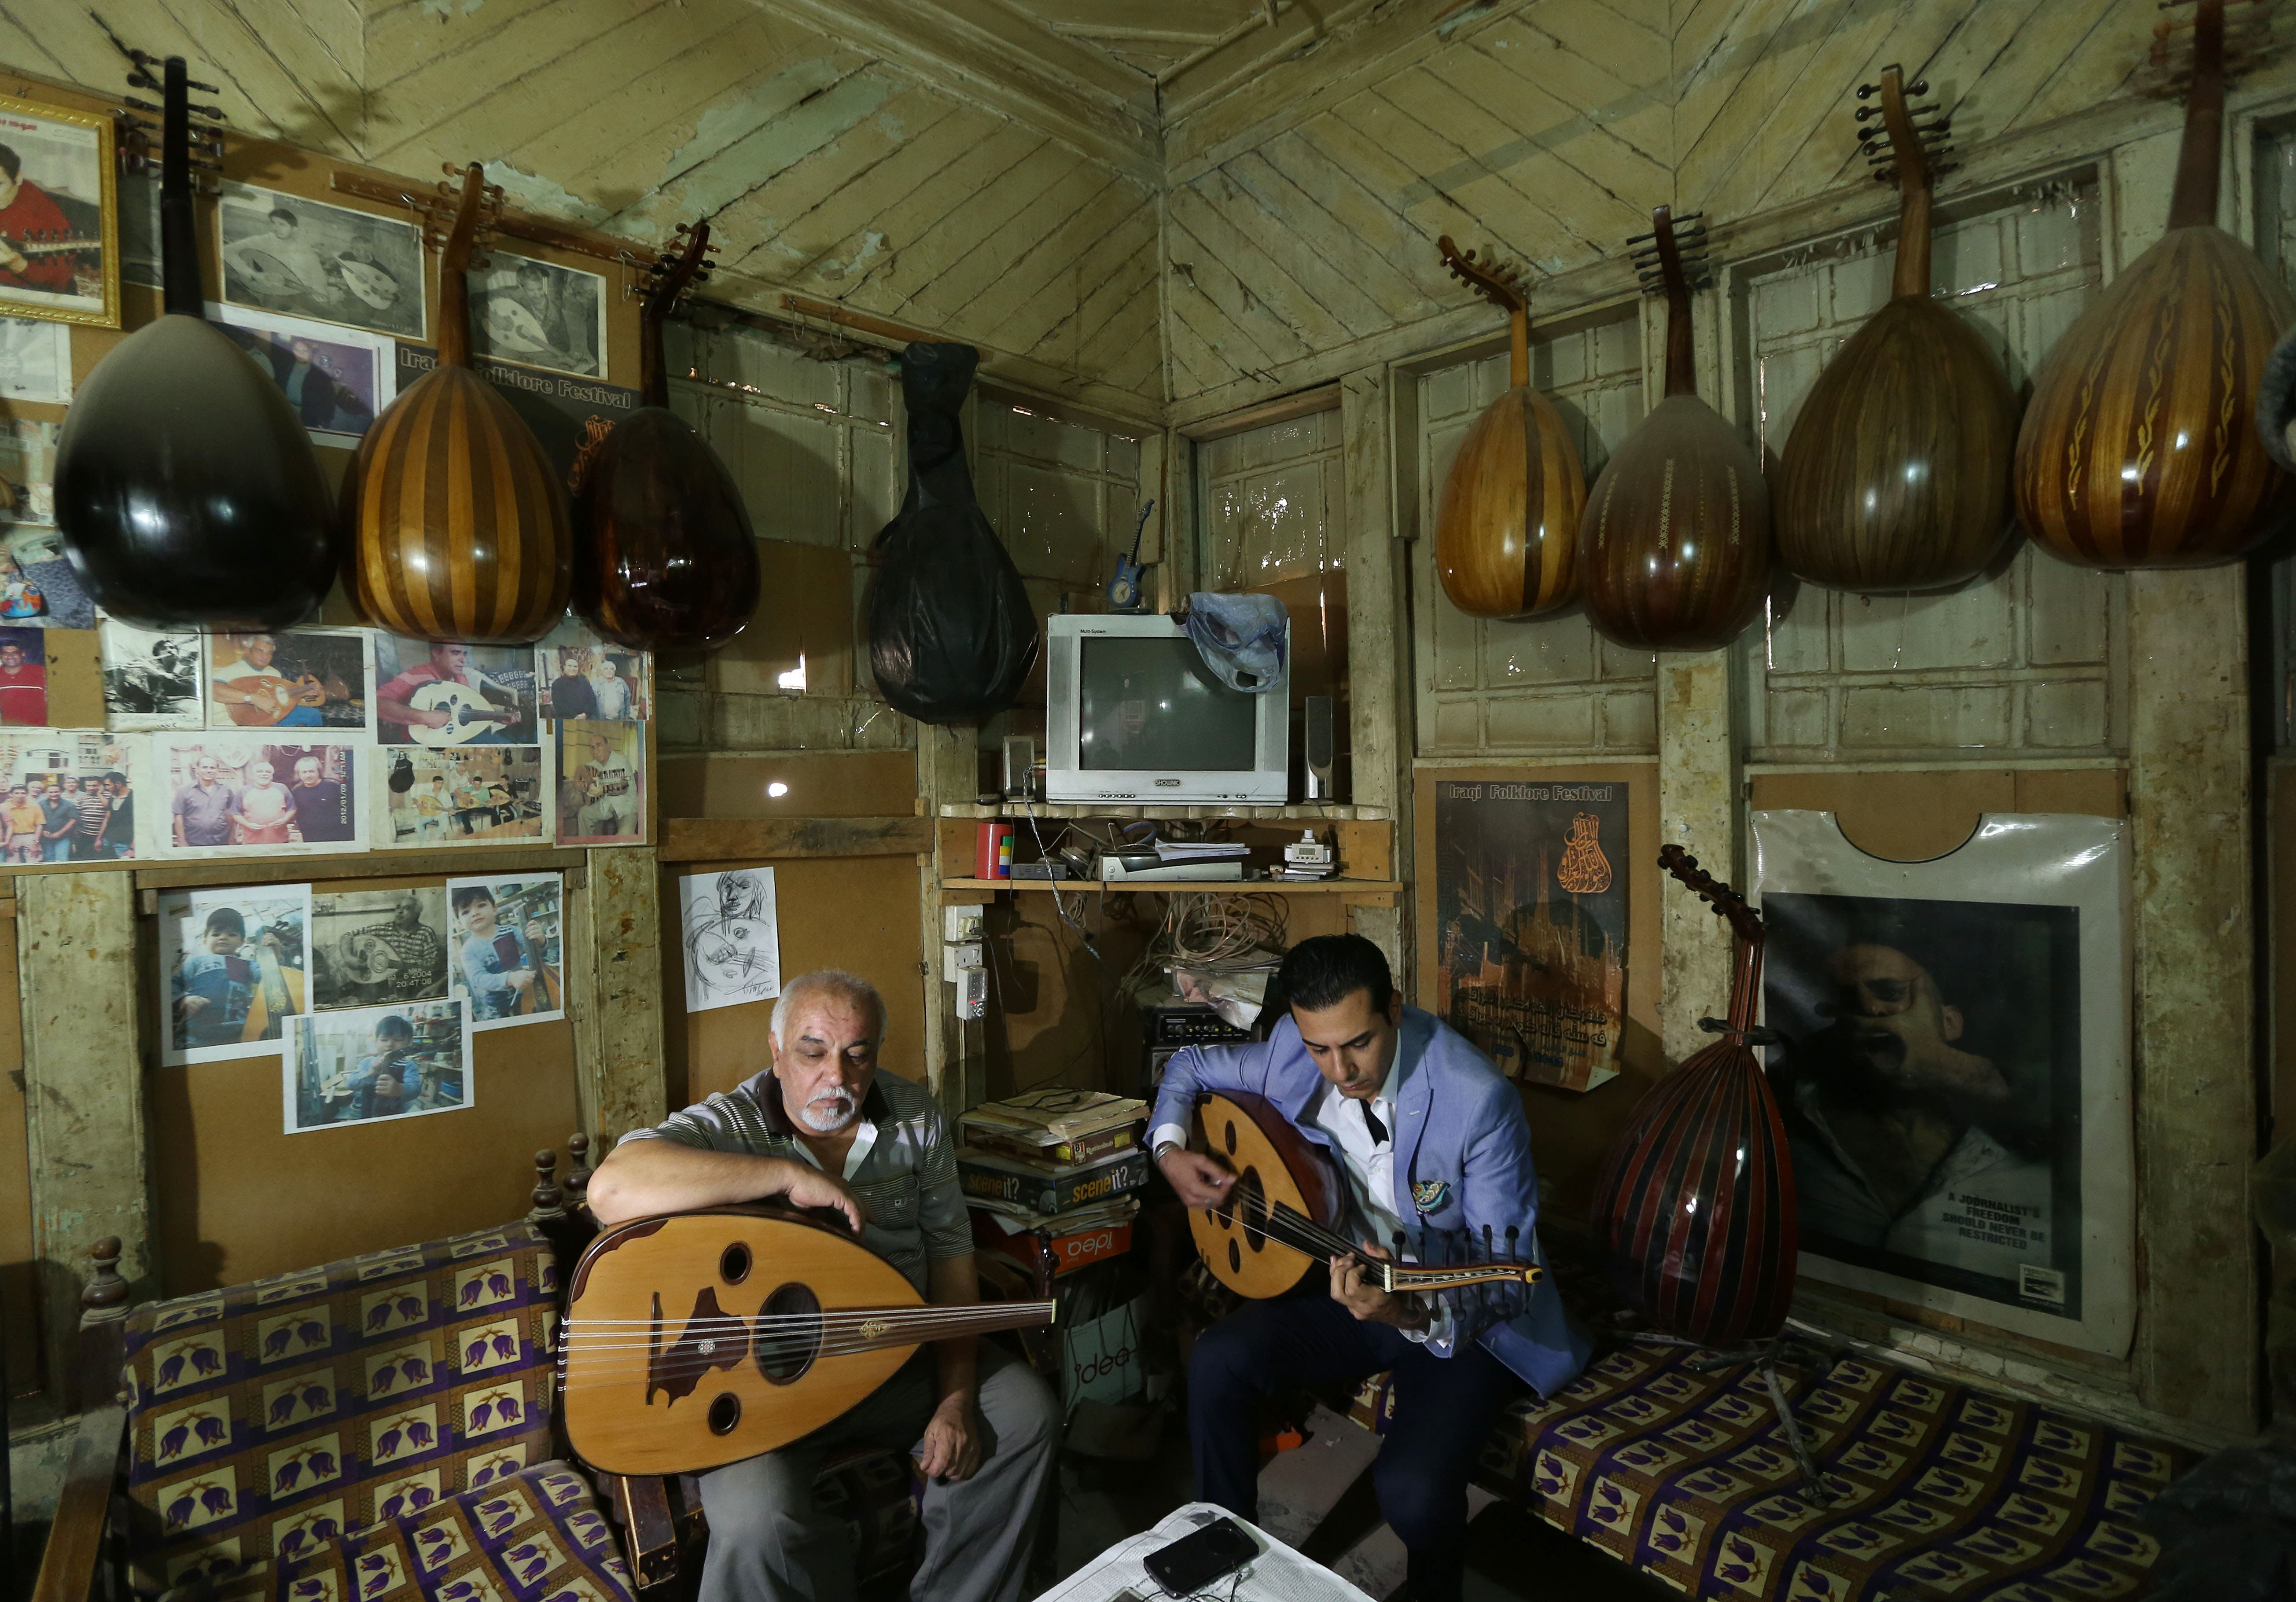 In this photo taken Thursday, June 18, 2015, Bassam Salim, right, and Mahmoud Abdulnabi , left, play on ouds at Abdulnabi's workshop in Baghdad, Iraq. The Islamic State group has banned music in the third of Iraq under its control, but in Baghdad a growing number of musicians and other artists are defying the extremists, hoping to revive a rich culture smothered by decades of war. (AP Photo/Hadi Mizban)